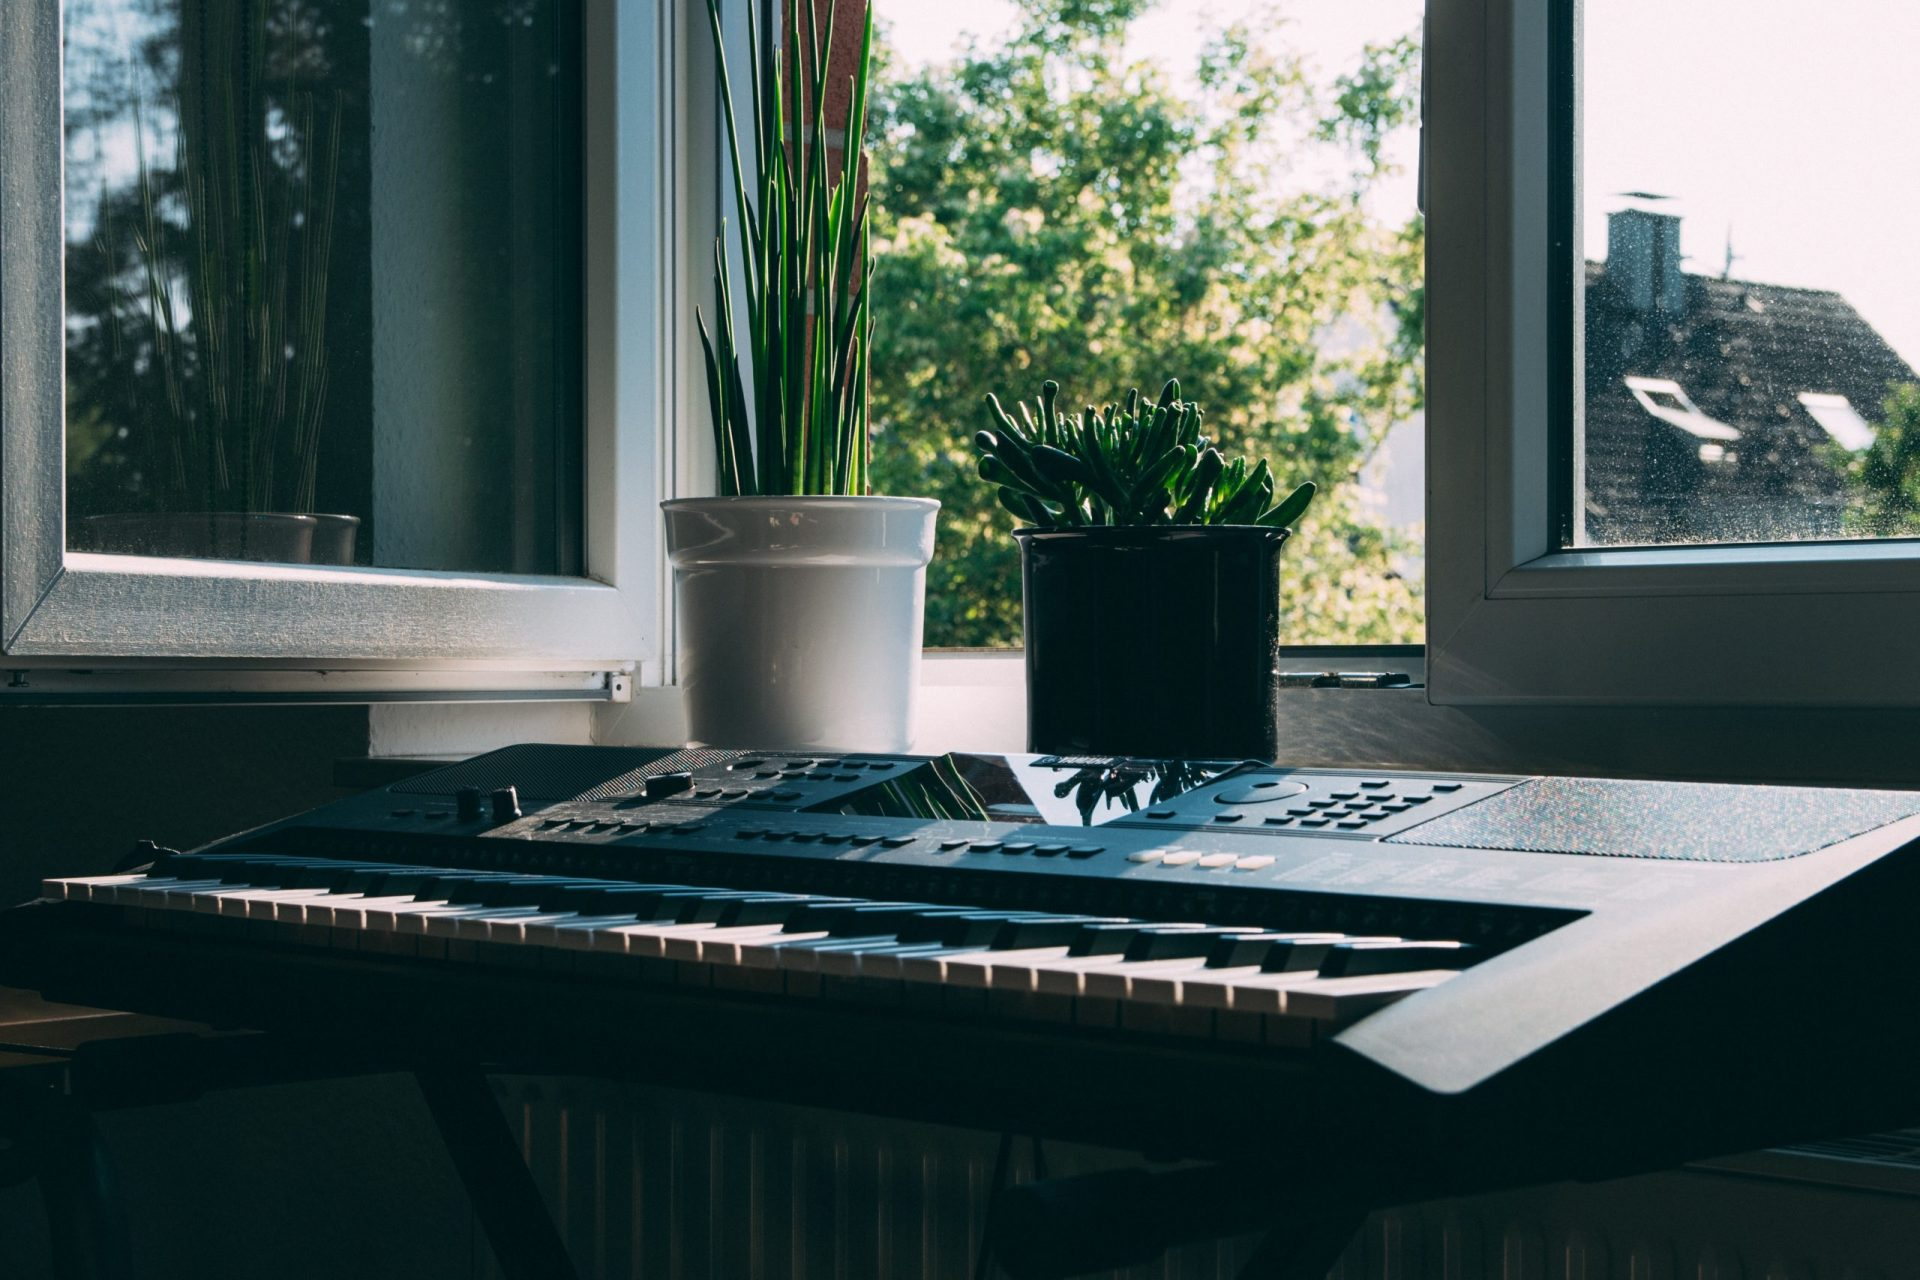 Best Digital Piano For Home Use